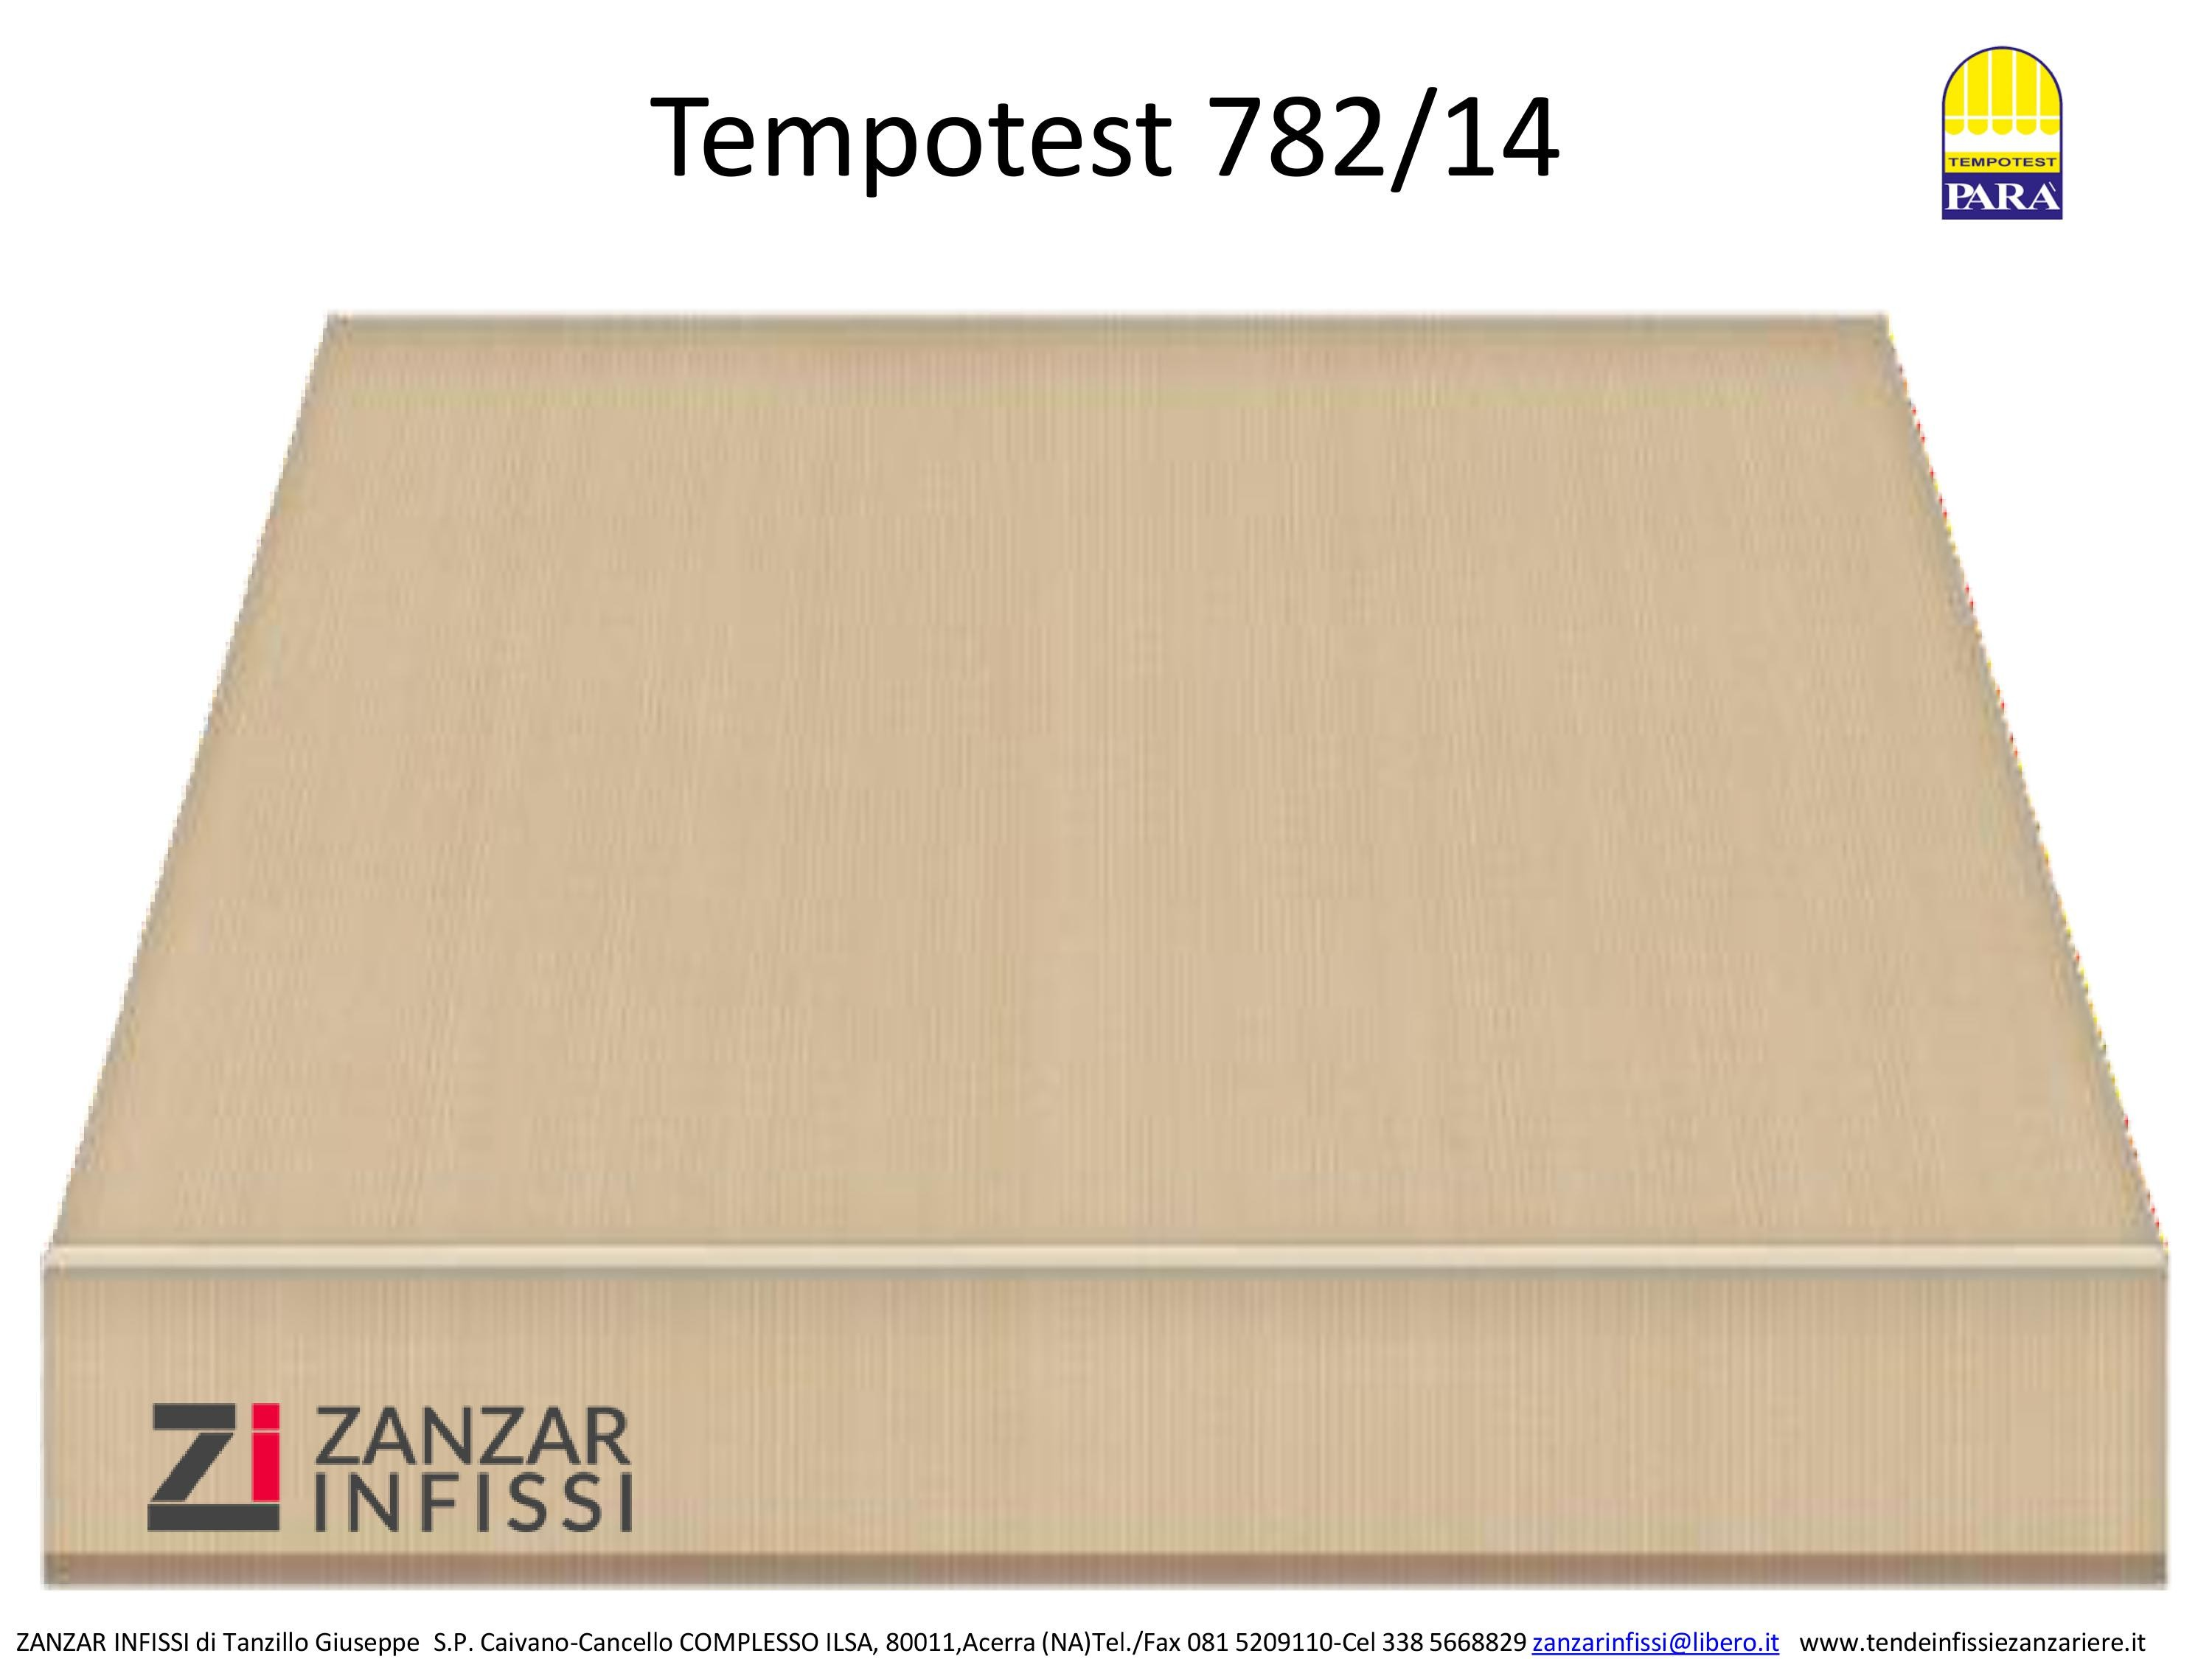 Tempotest 782/14